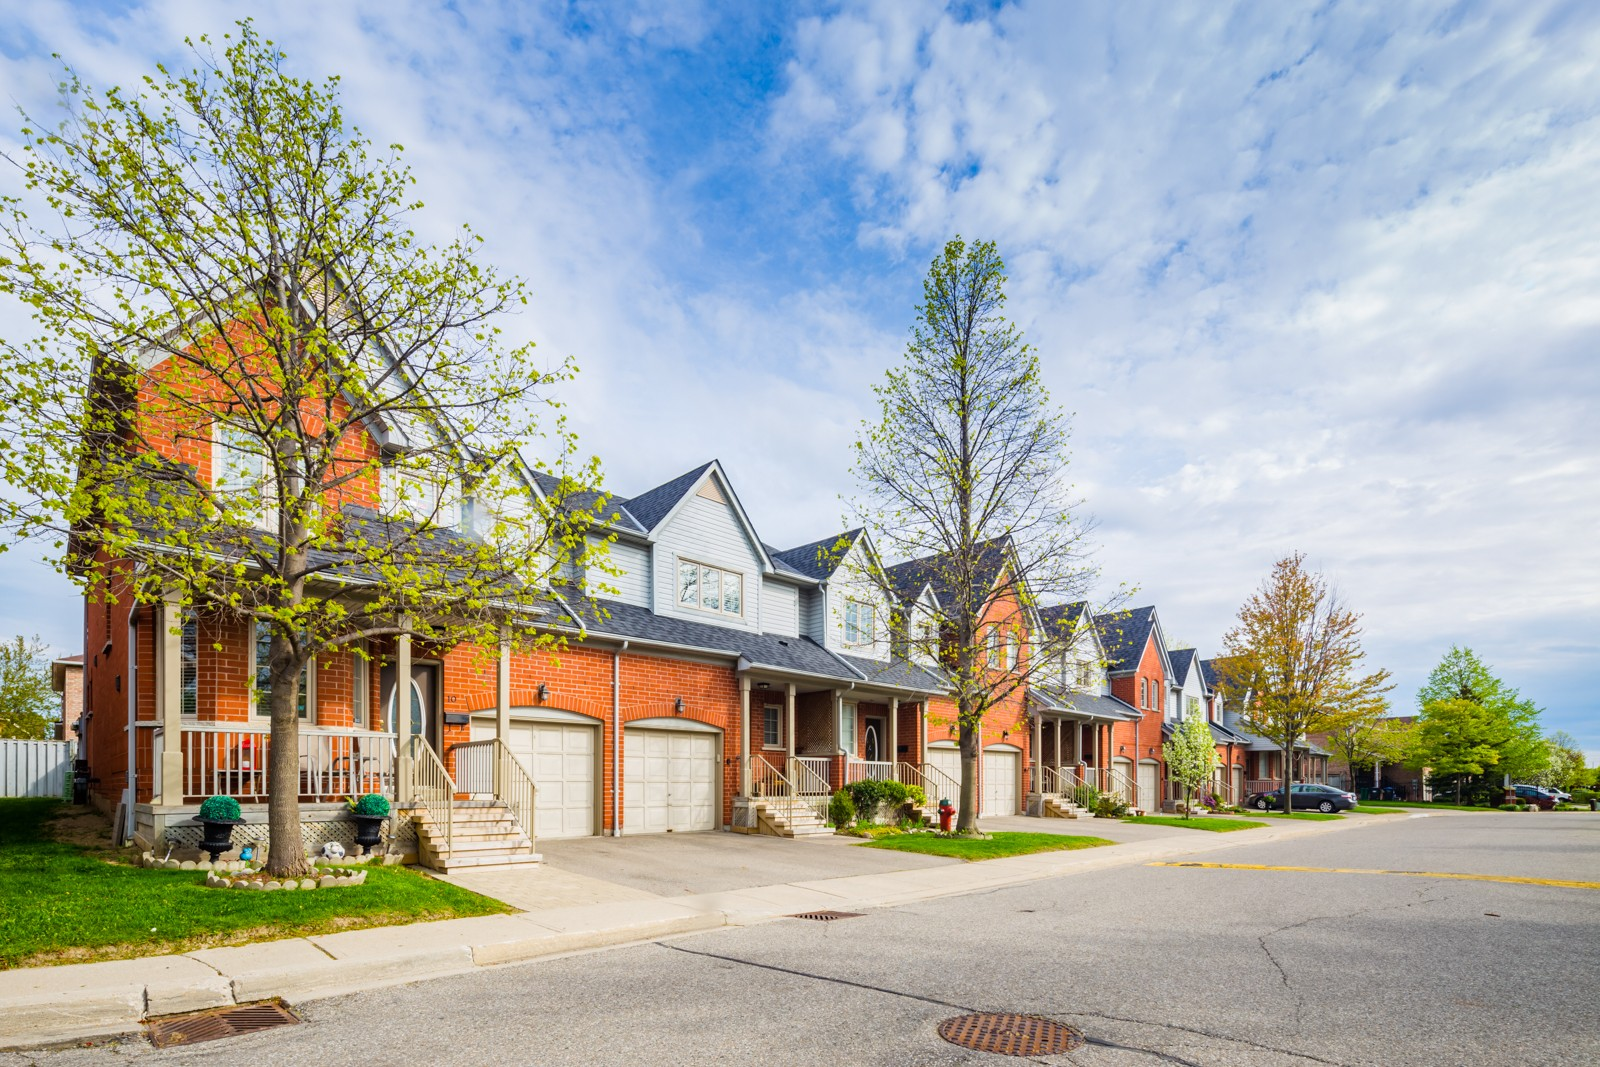 5223 Fairford Cres Townhouses at 5223 Fairford Crescent, Mississauga 0